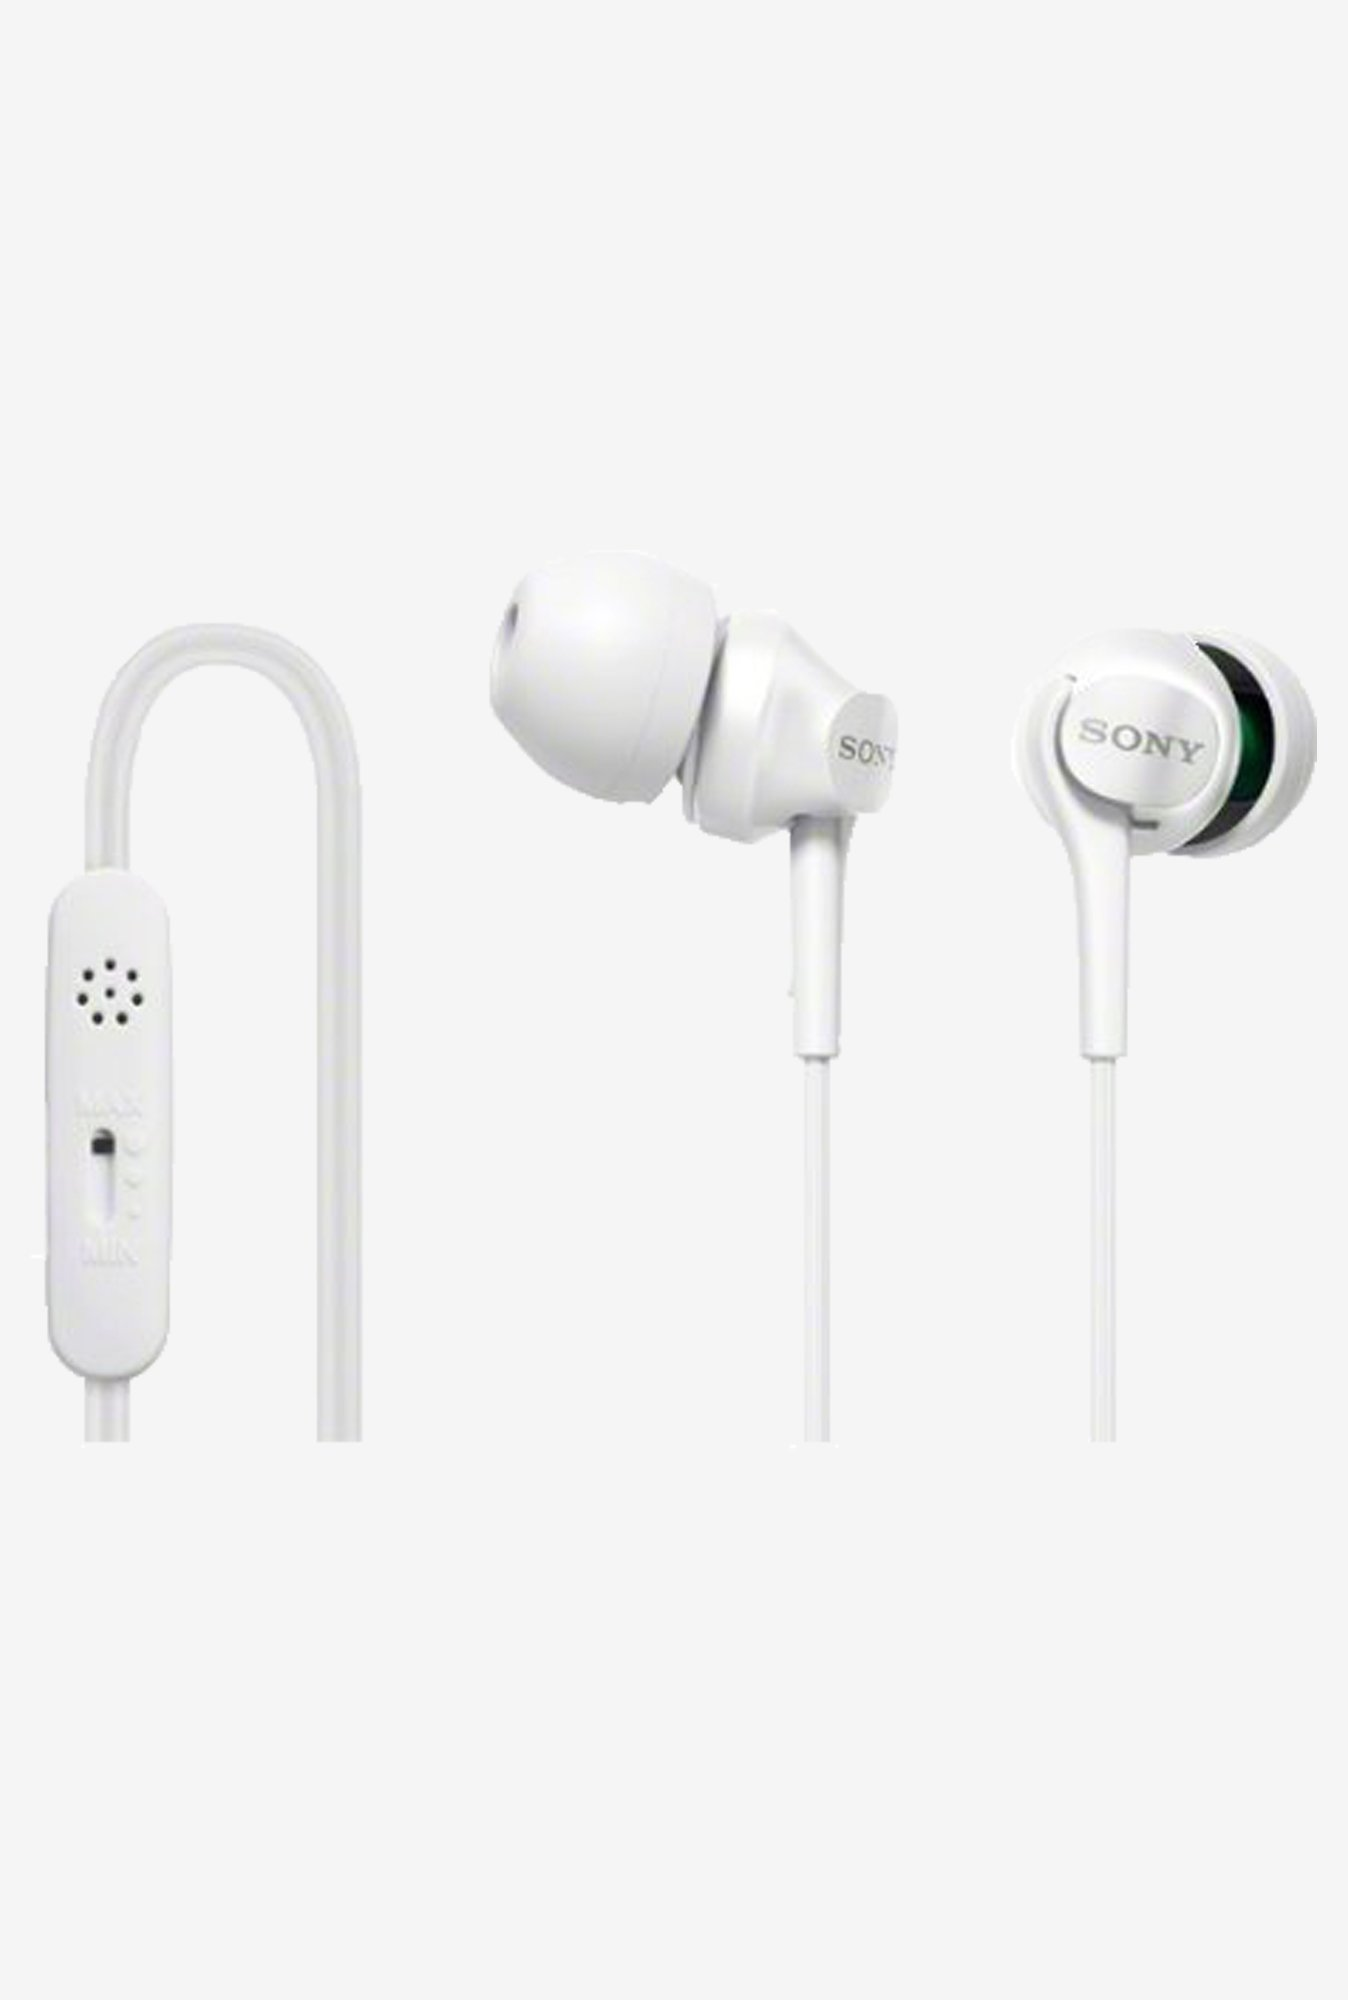 Sony DR-EX102VP-W In-Ear Headphones (White)